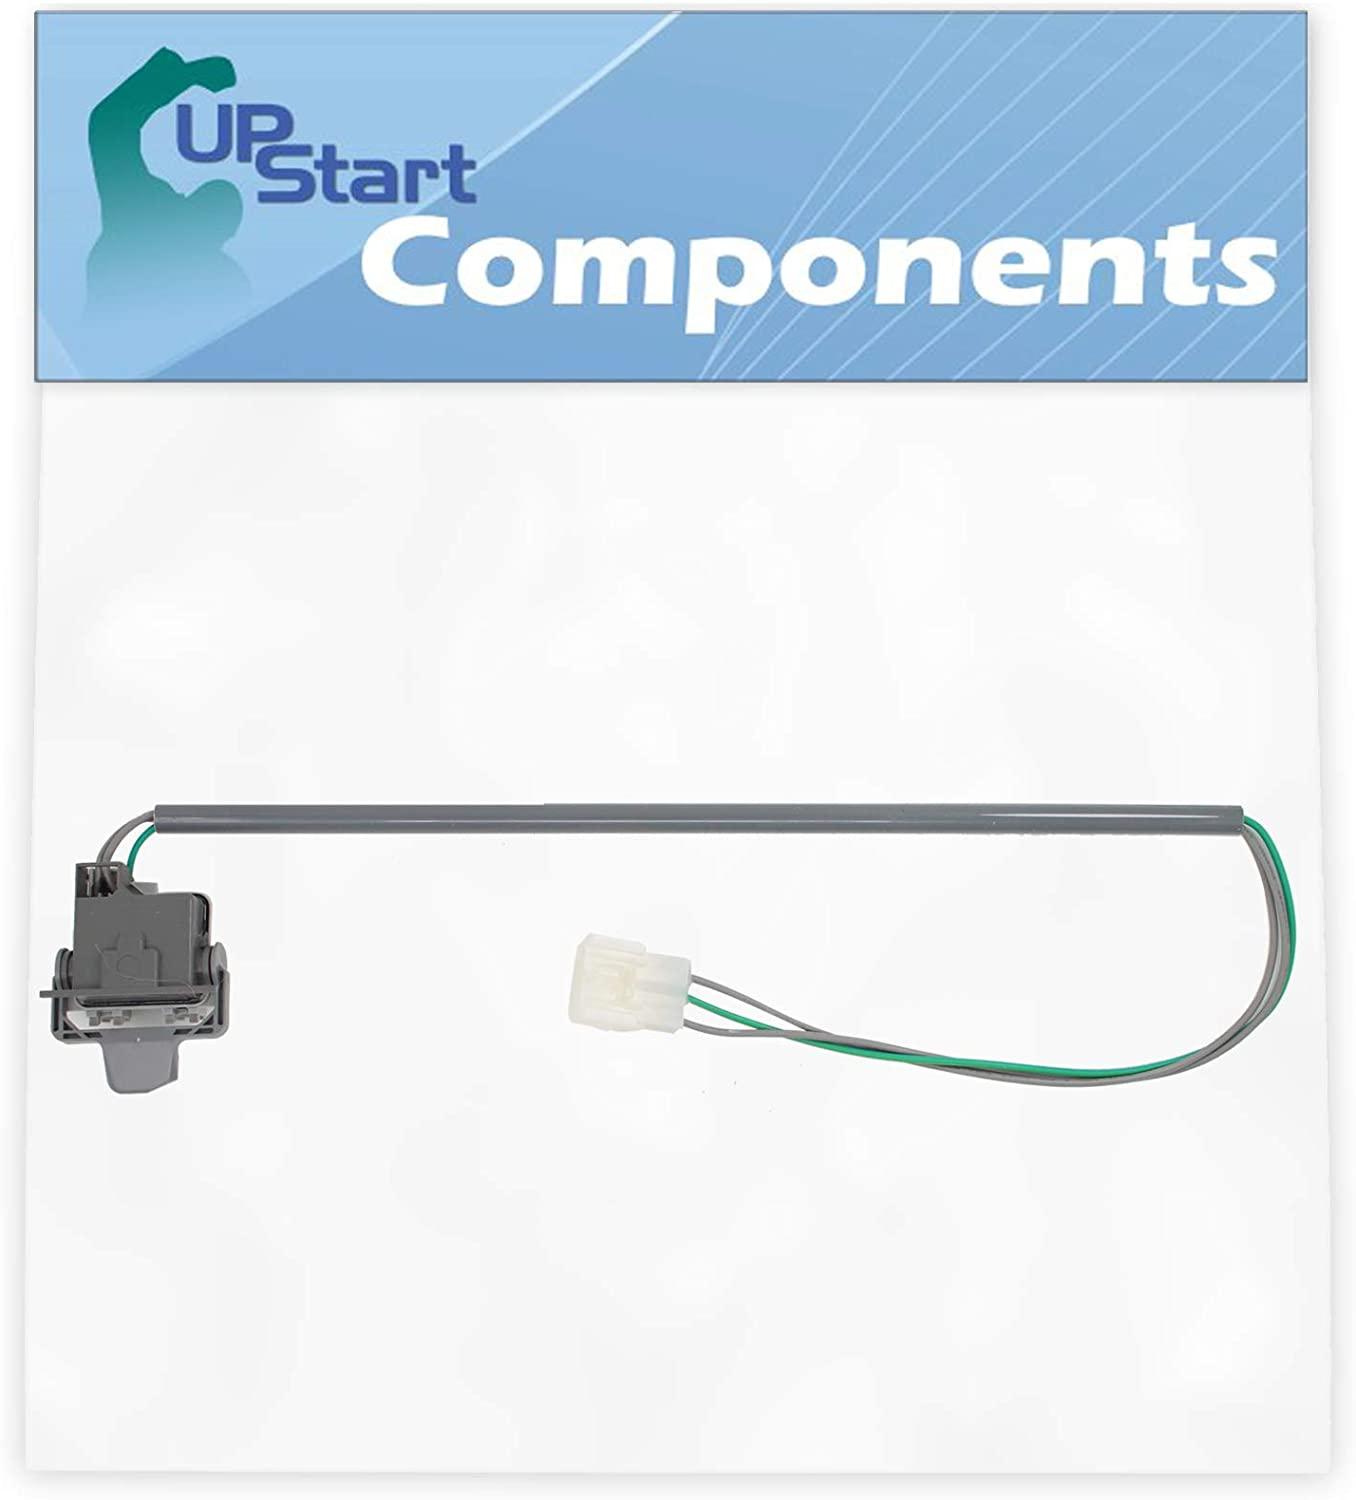 3949247 Washer Lid Switch Replacement for Kenmore/Sears 11029012990 Washing Machine - Compatible with 3949247V Lid Switch - UpStart Components Brand